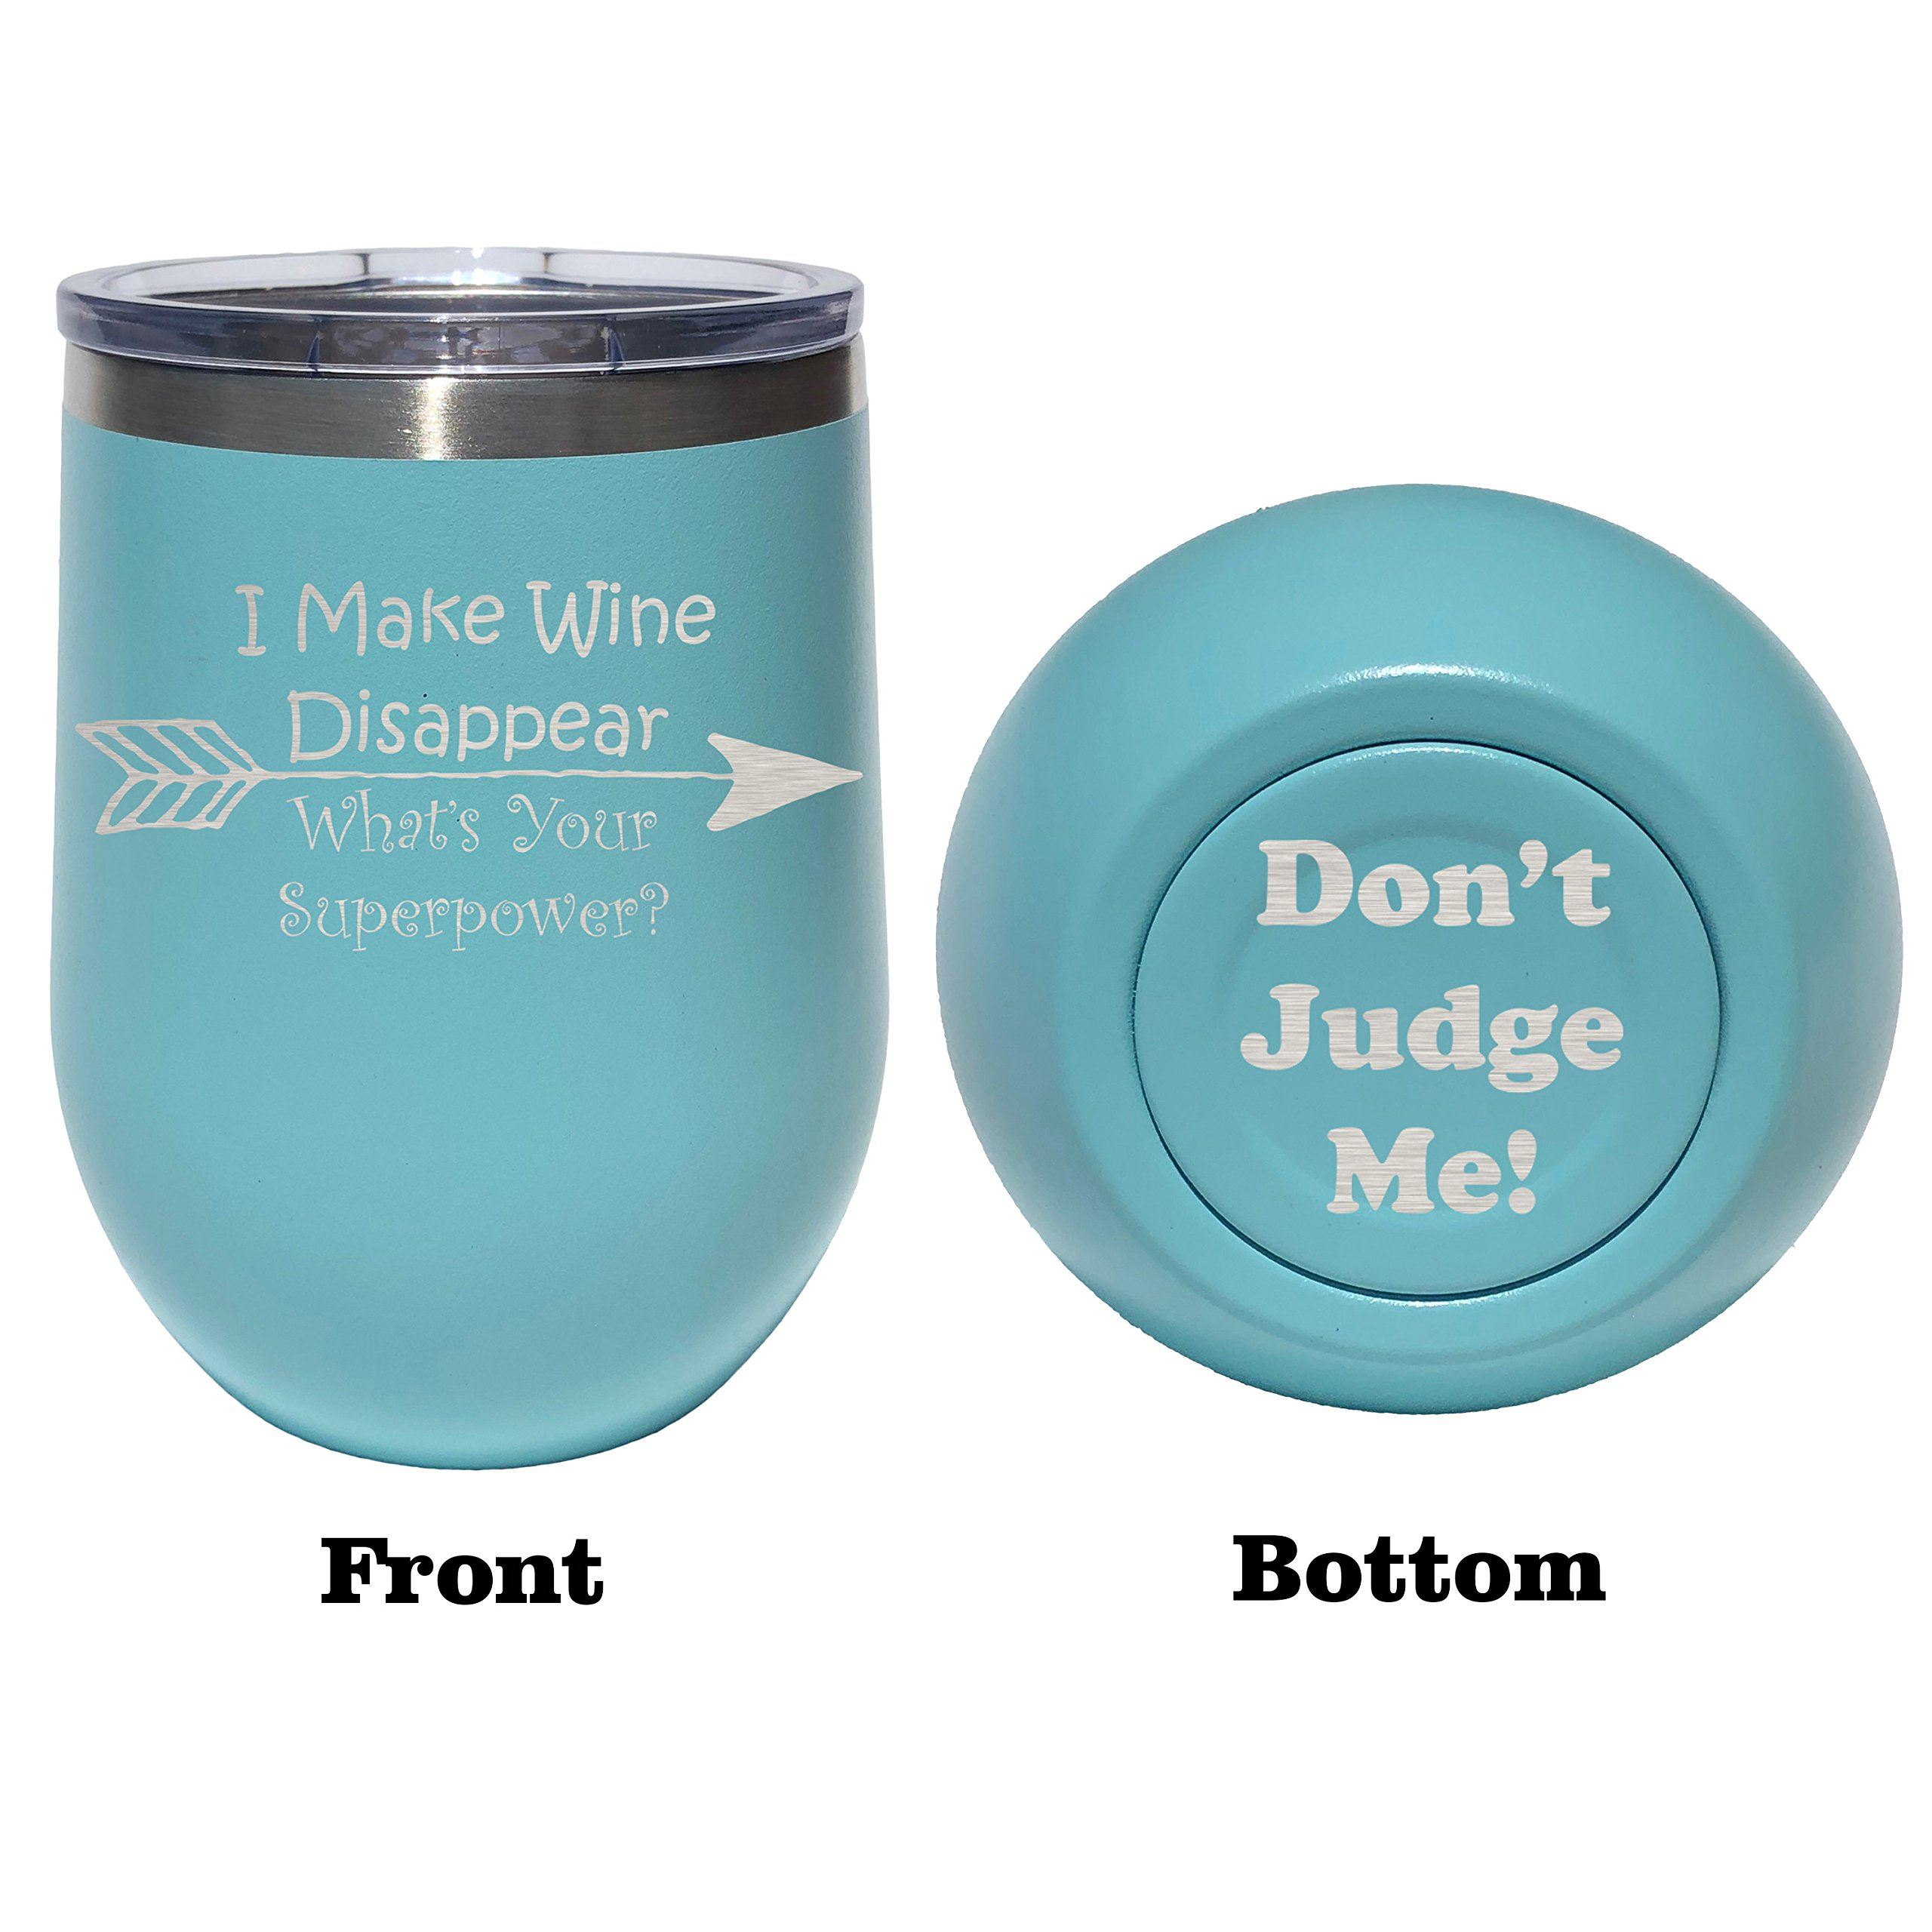 Insulated Wine Tumbler, I Make Wine Disappear, Laser Engraved, Stemless Wine Tumbler, Funny, 12oz Insulated Tumbler, Stainless Steel, Double Wall